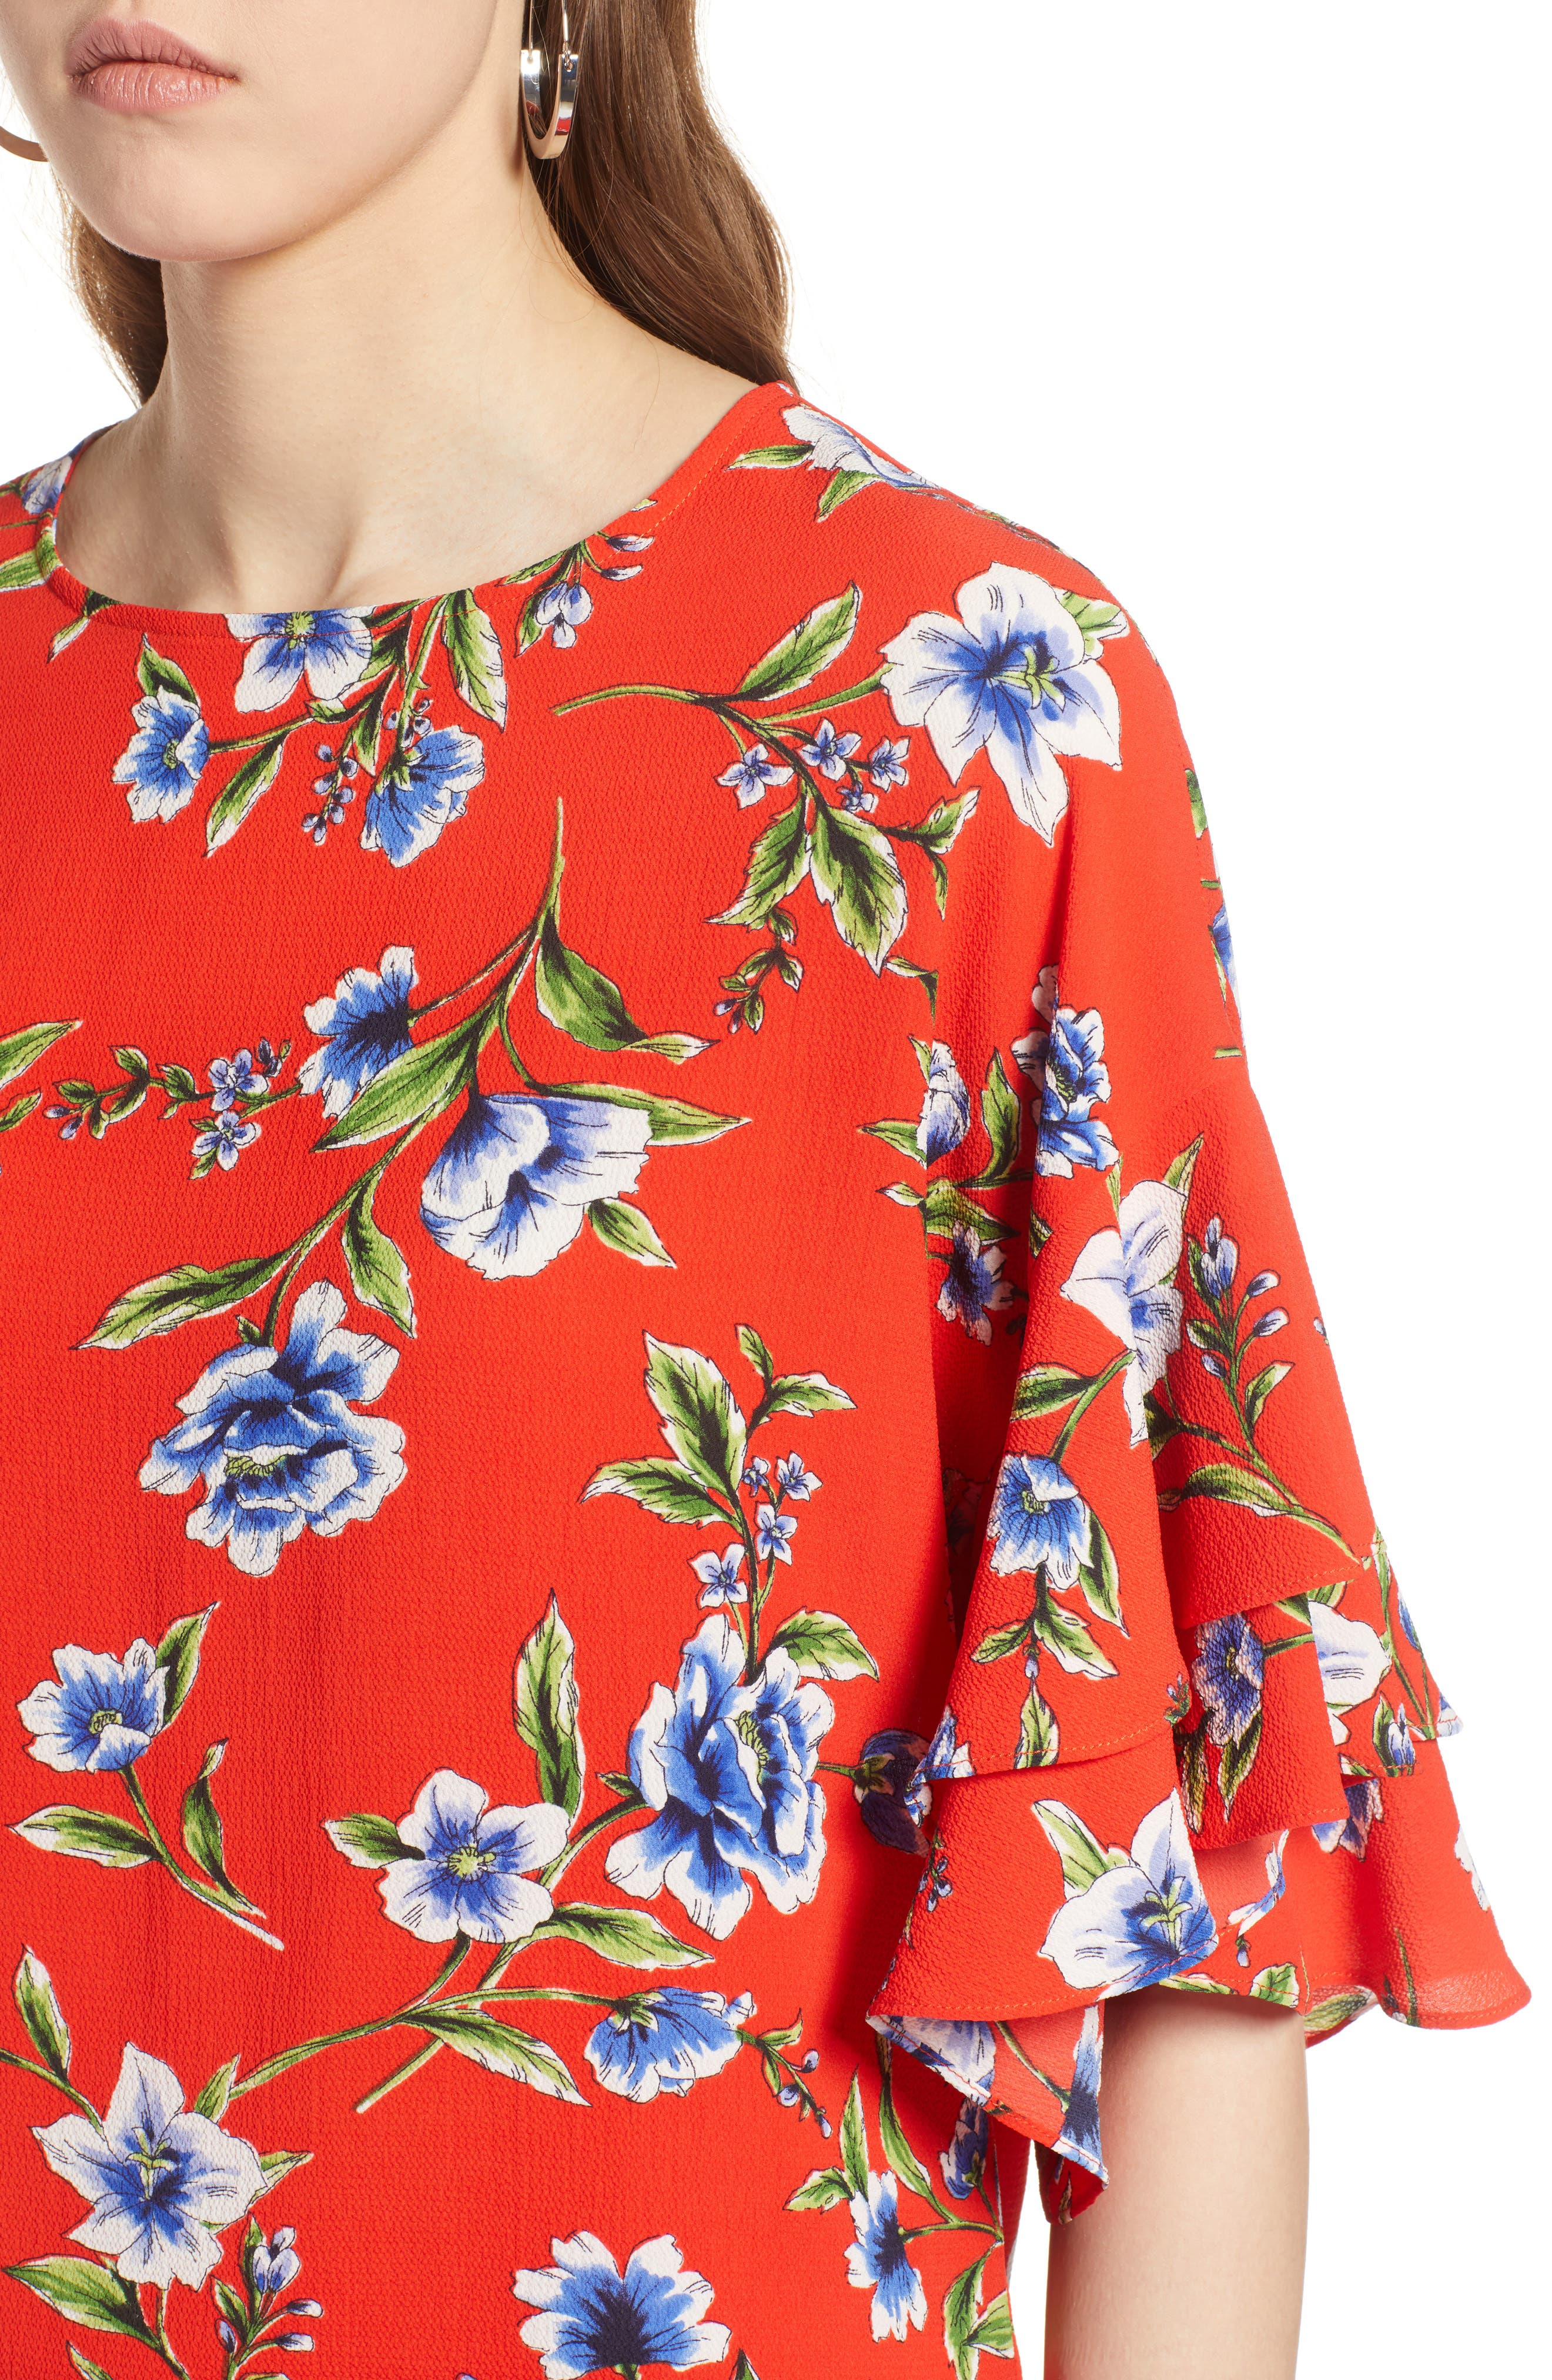 Ruffle Sleeve Print Top,                             Alternate thumbnail 5, color,                             Red Blossom Print